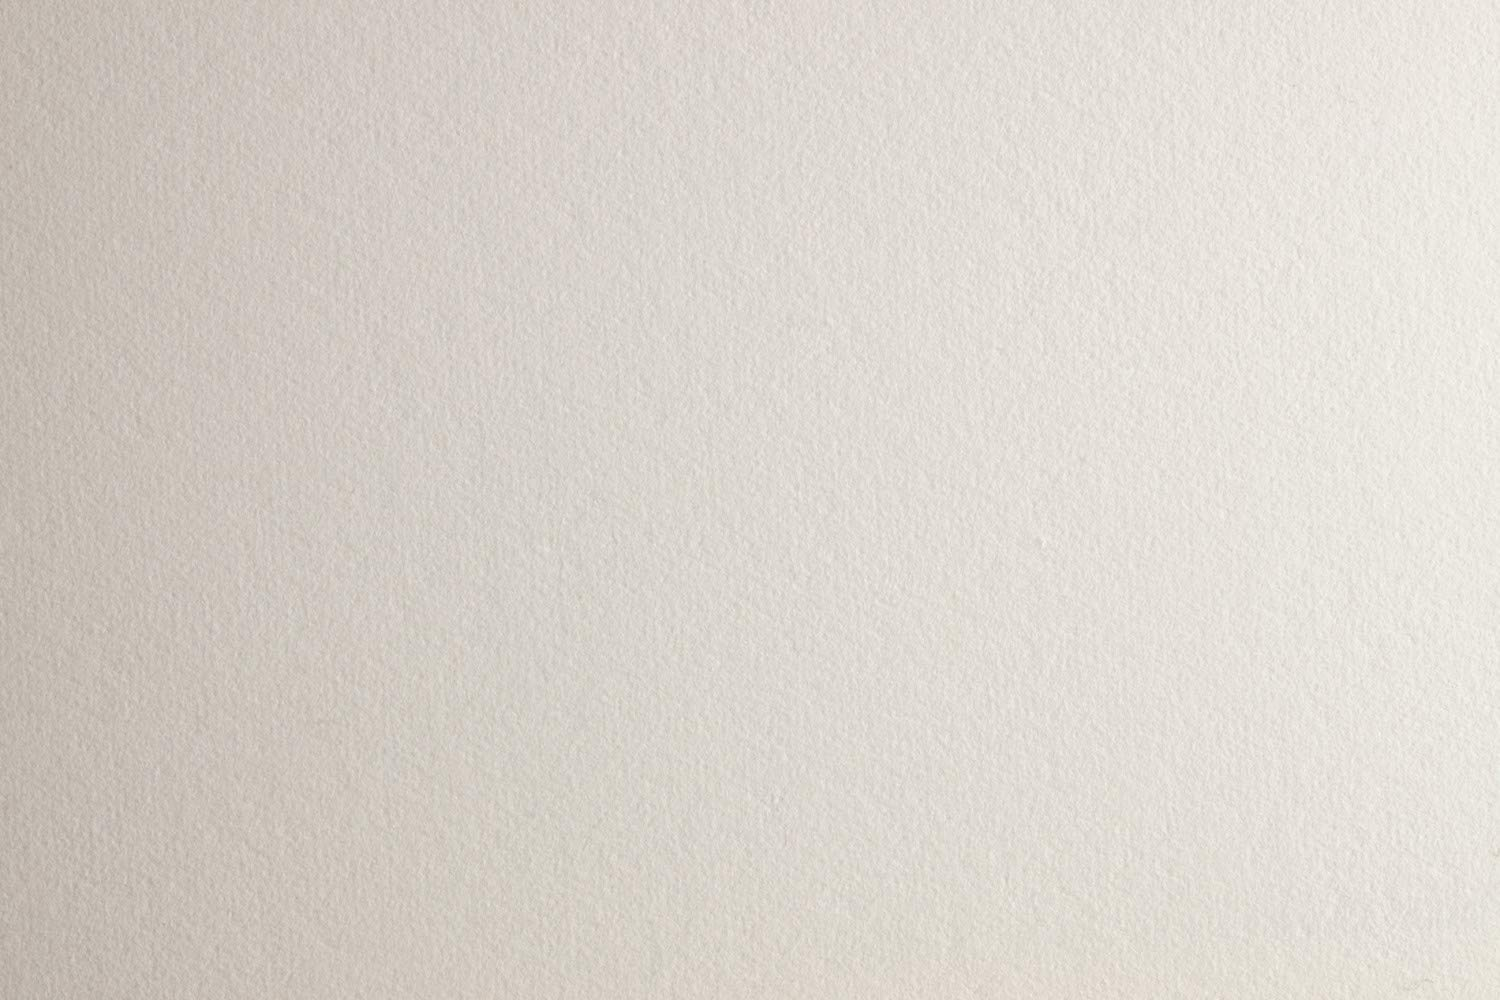 Fabriano Artistico Watercolor Paper - 140 lb. Hot Press Roll 55 inchs x 11 Yards - Traditional White w/ Watermark